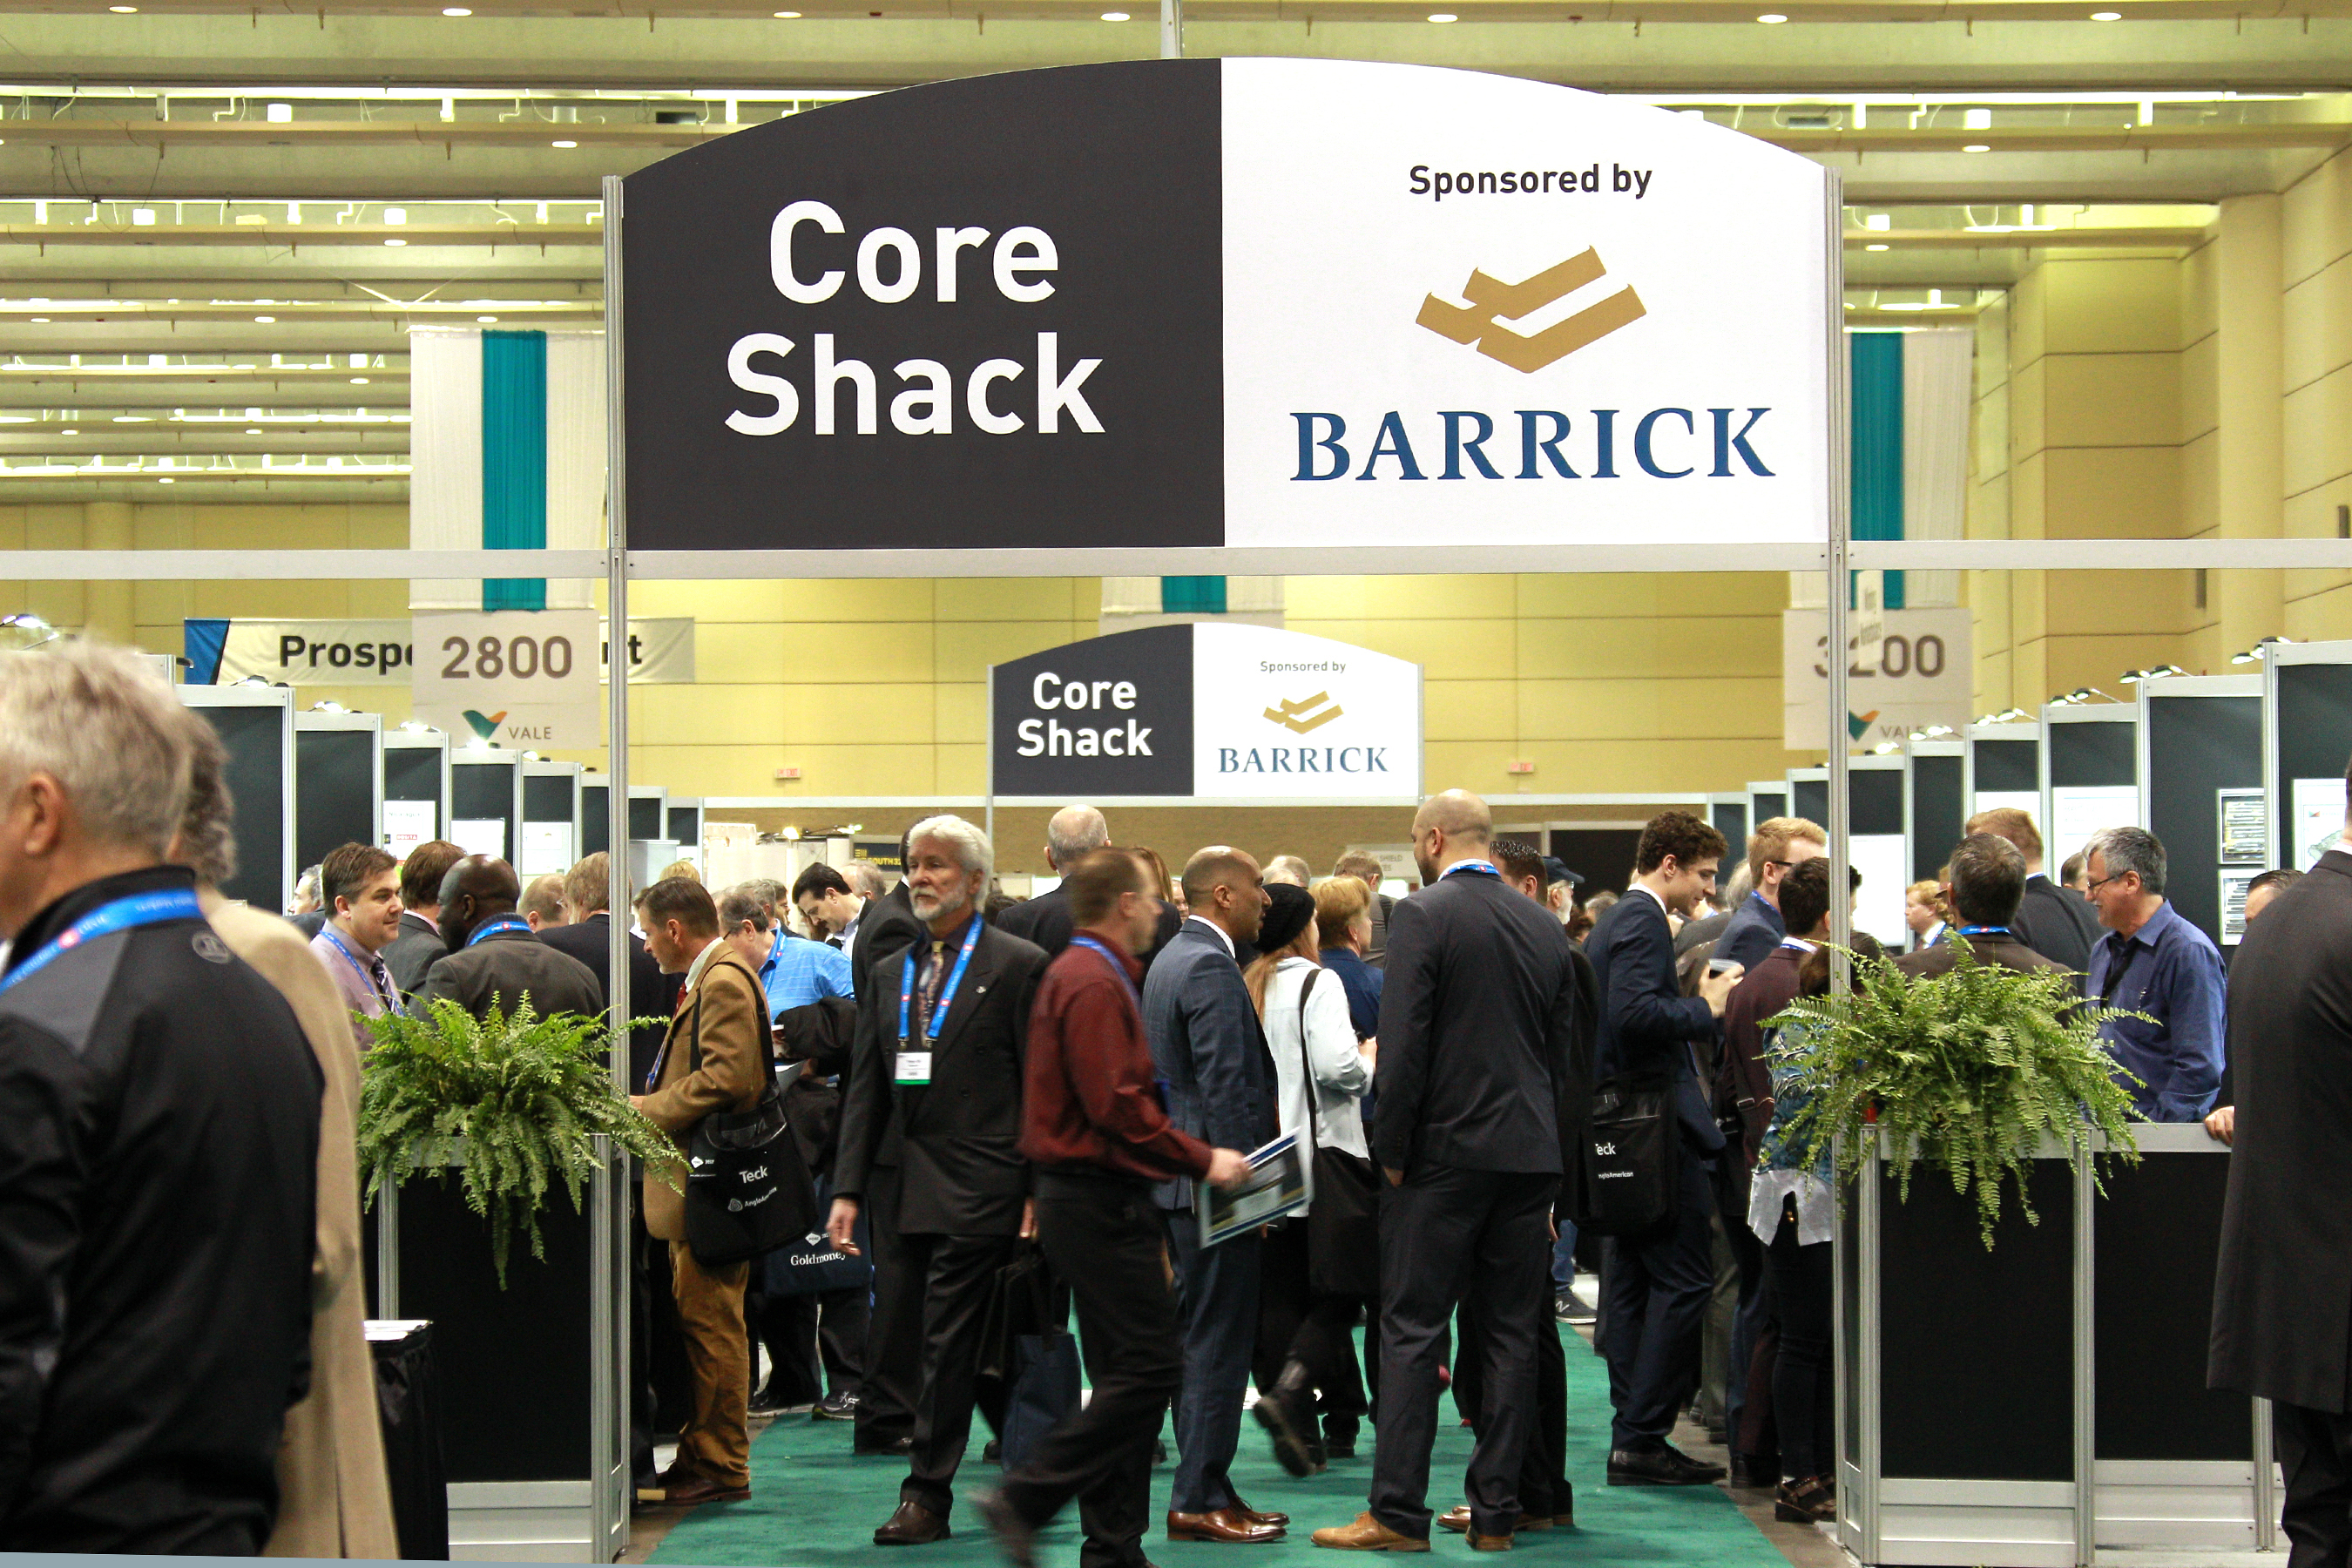 Core Shack sponsored by Barrick Gold Corporation